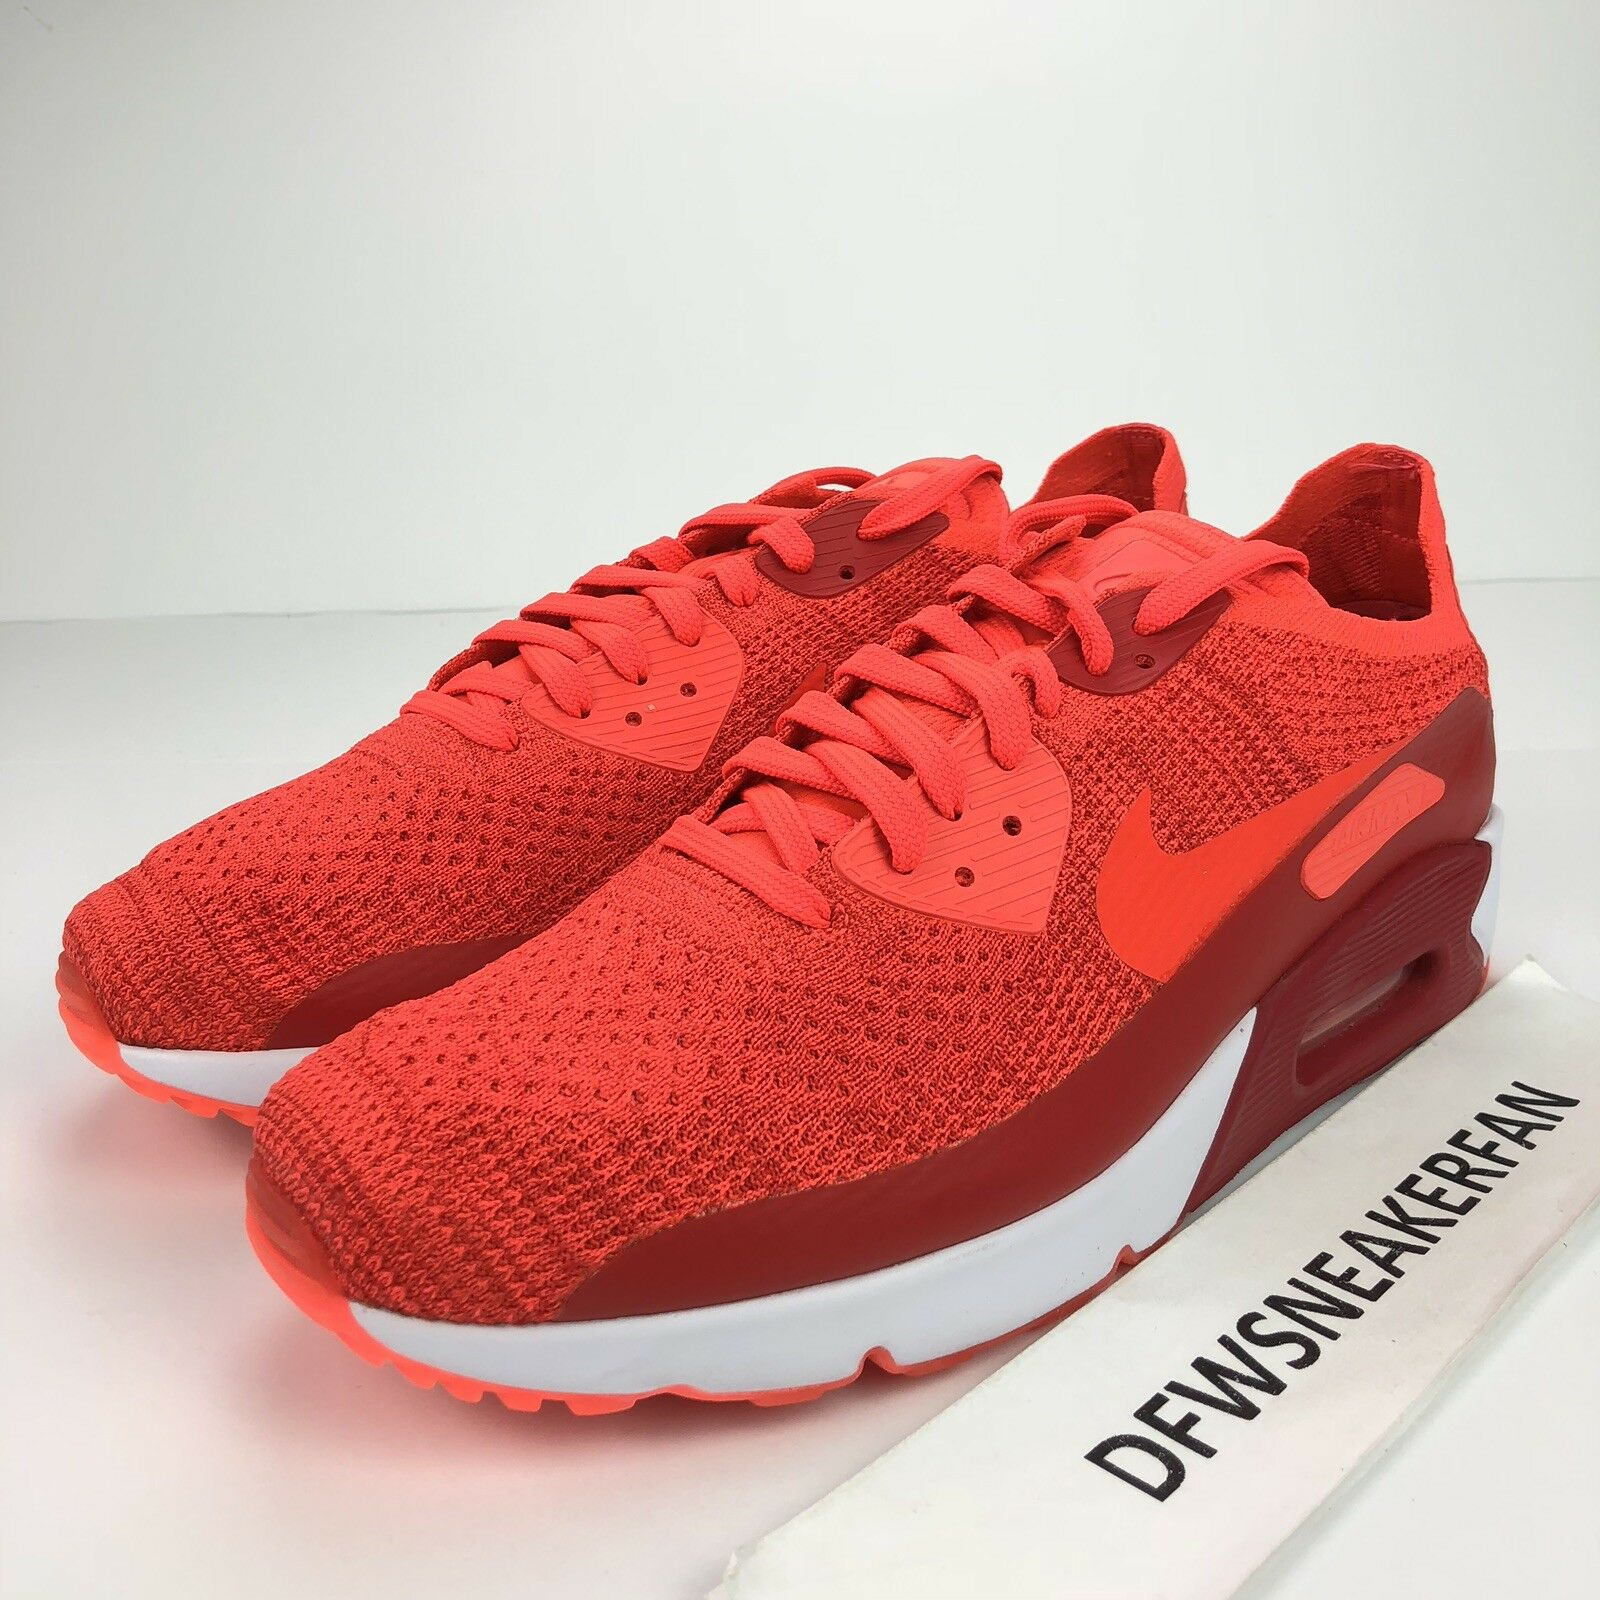 Nike Air Max 90 Ultra 2.0 Flyknit Men's 11.5 shoes Bright Crimson 875943-600 New